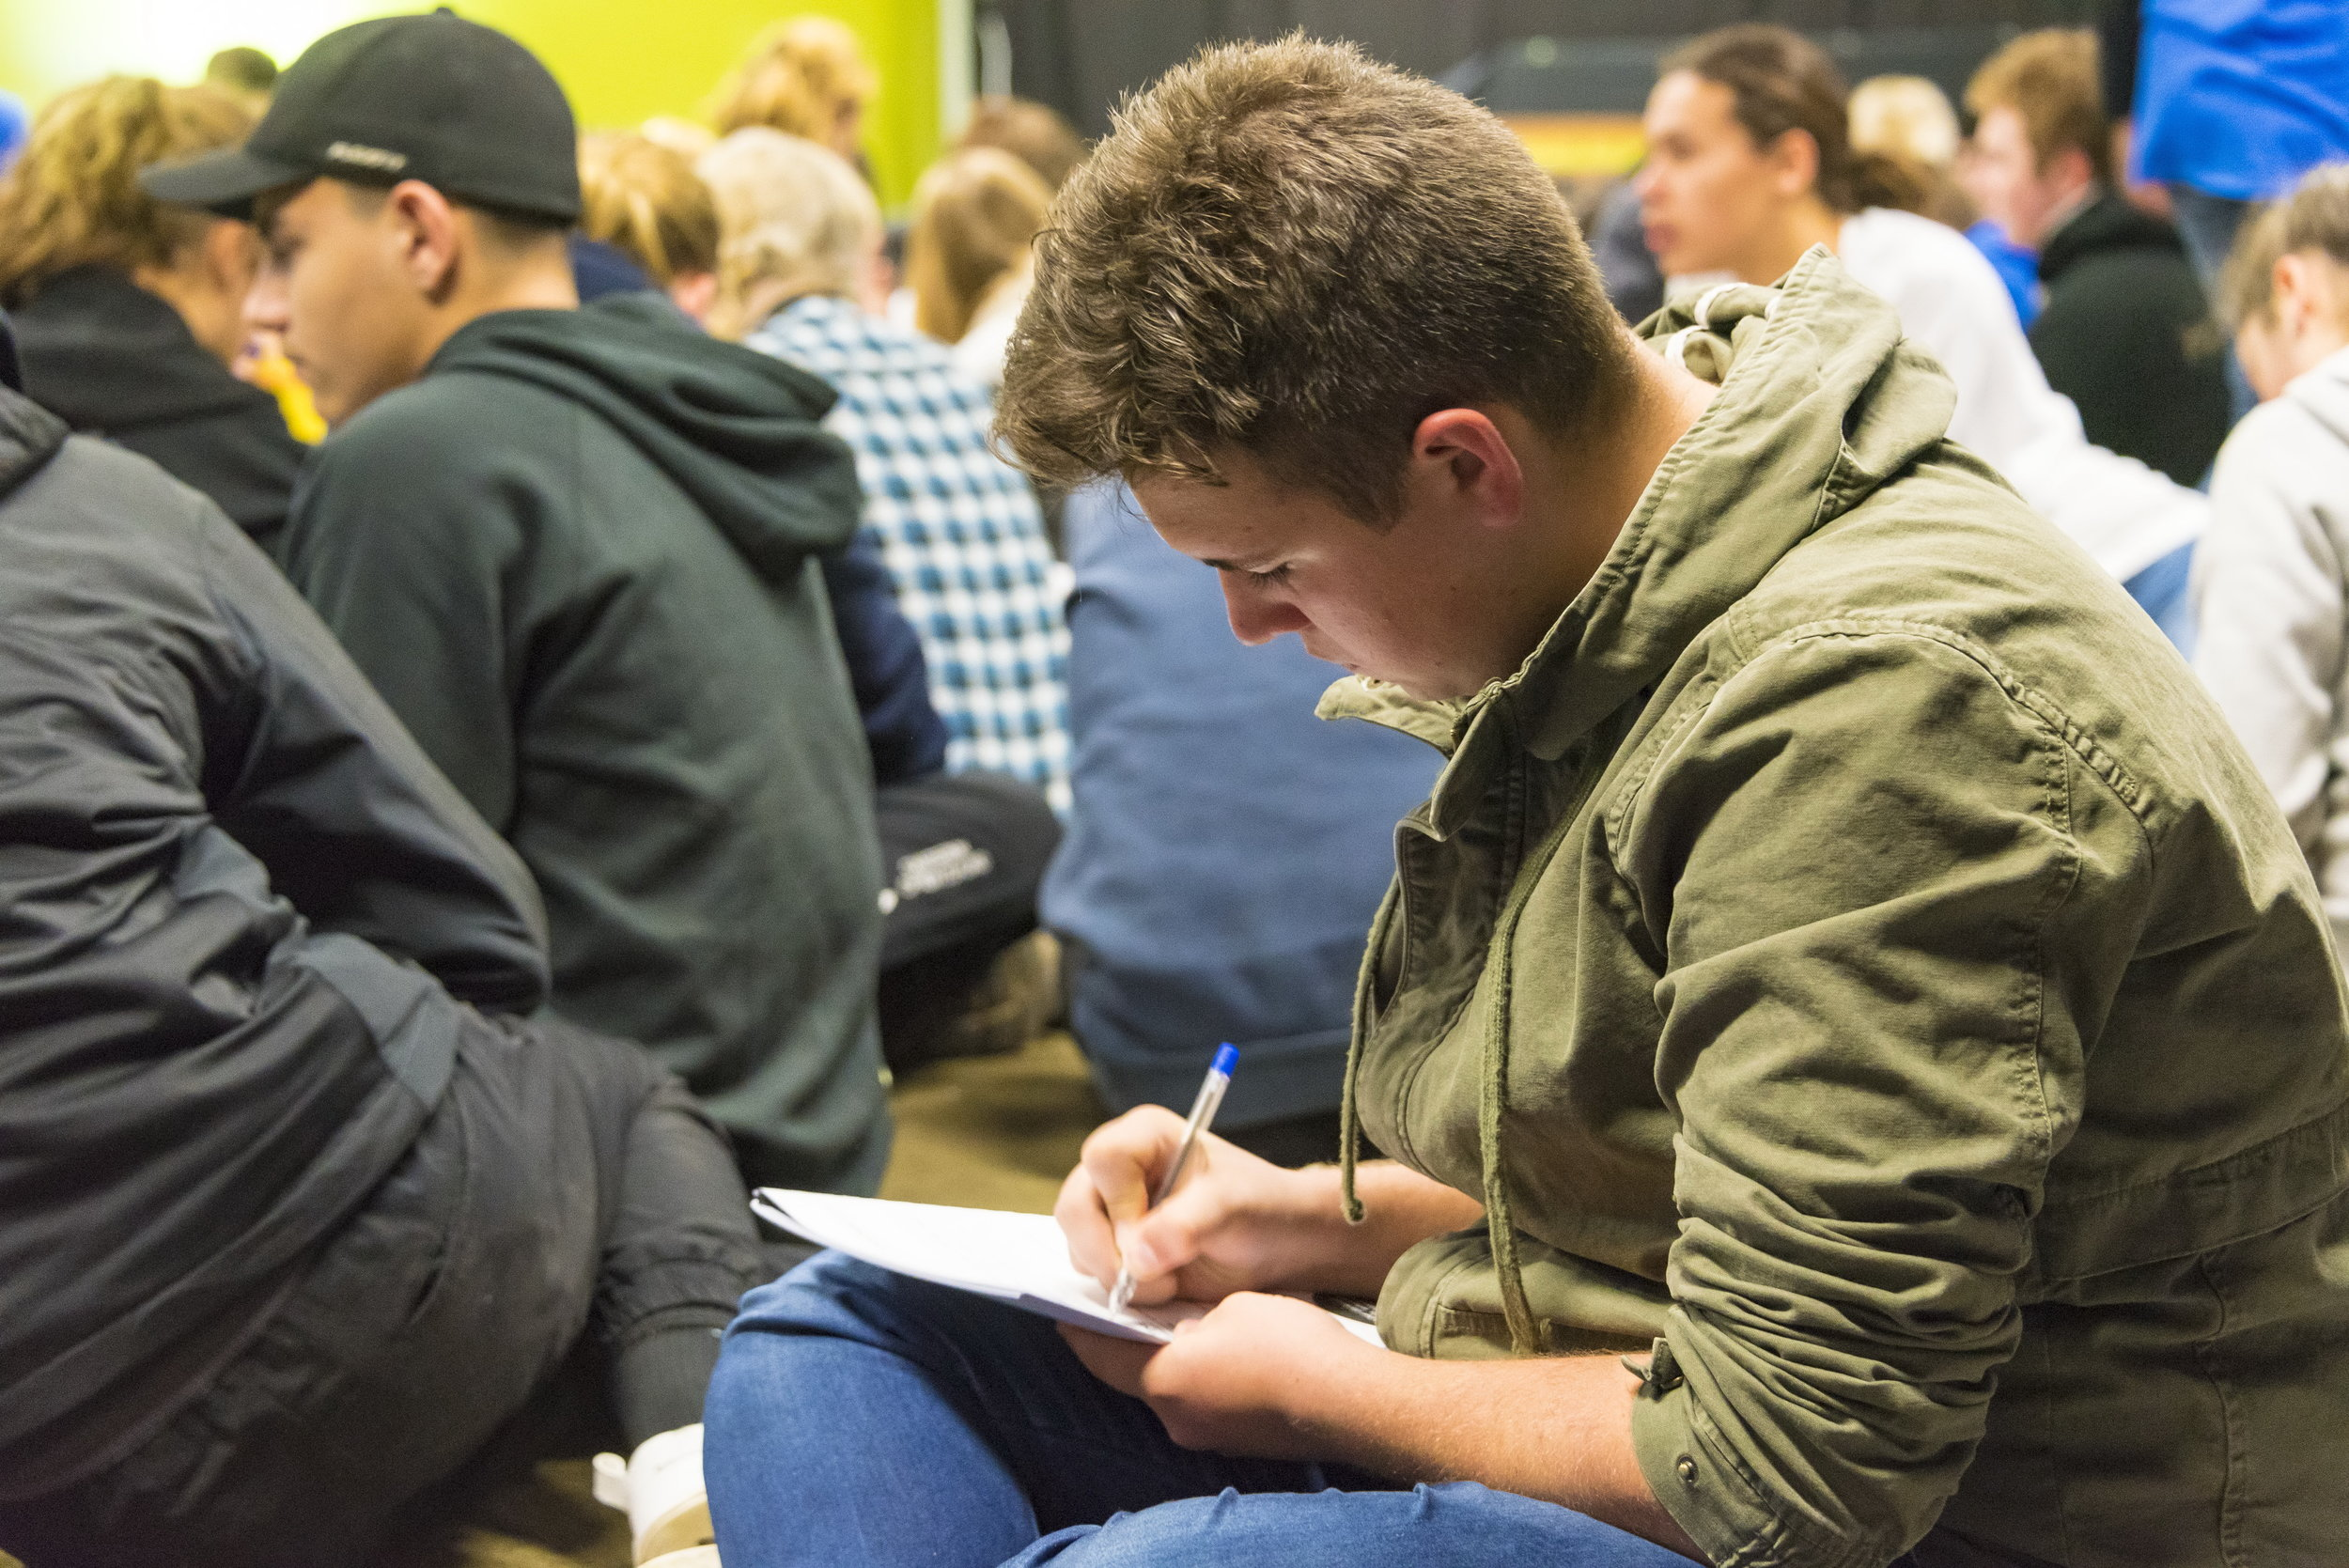 Students Learning 1.jpg